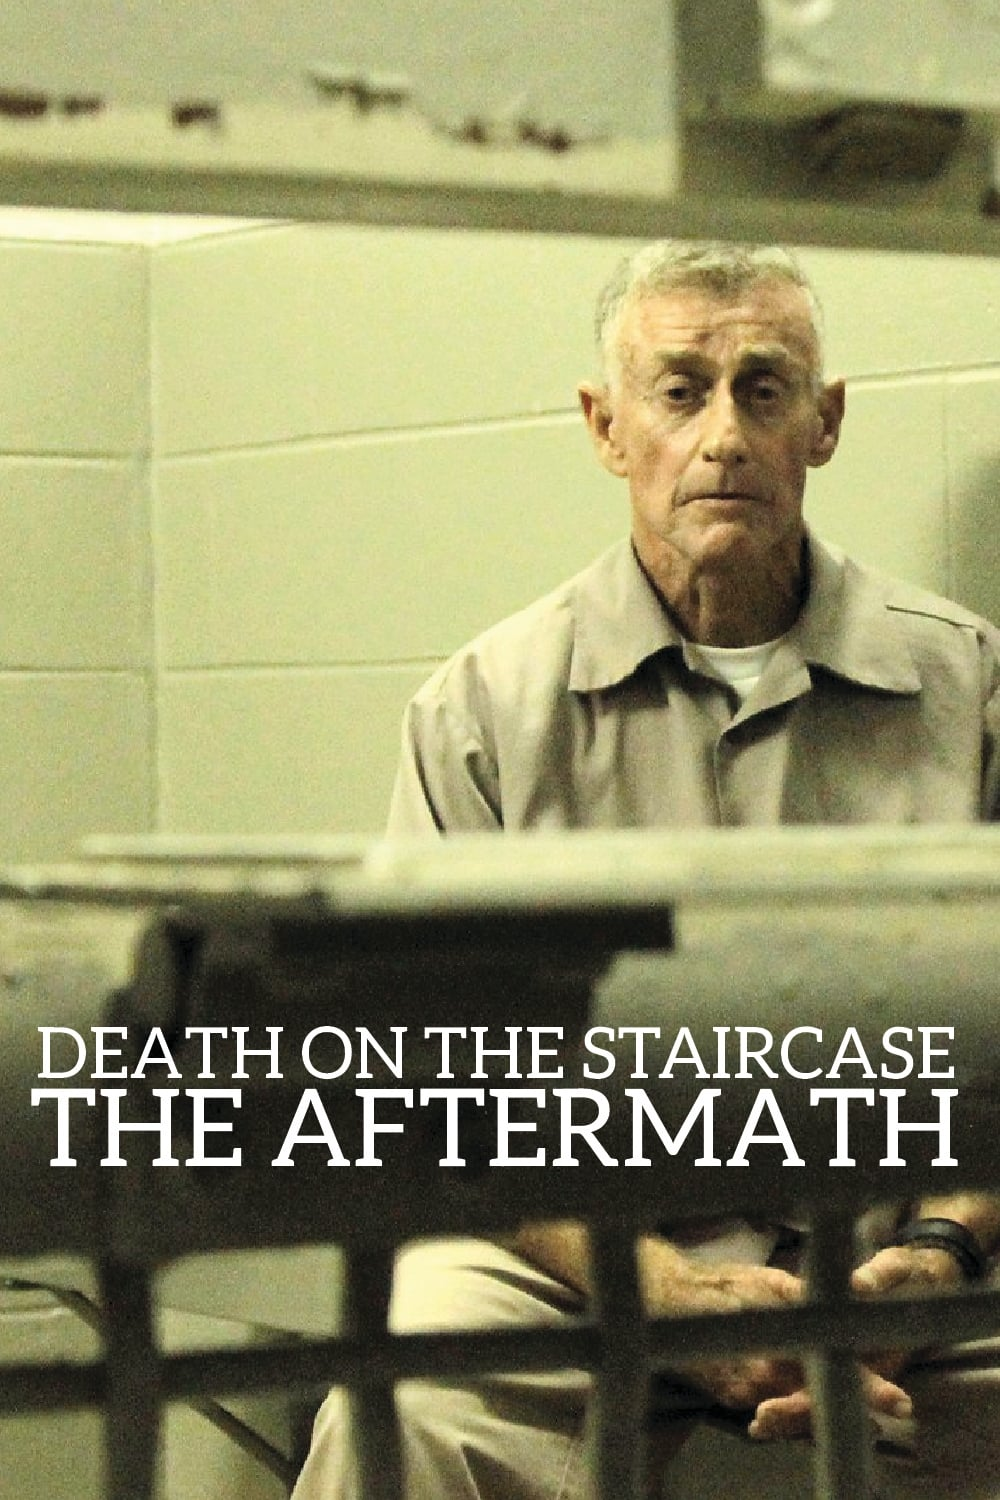 Death on the Staircase: The Aftermath (2005)